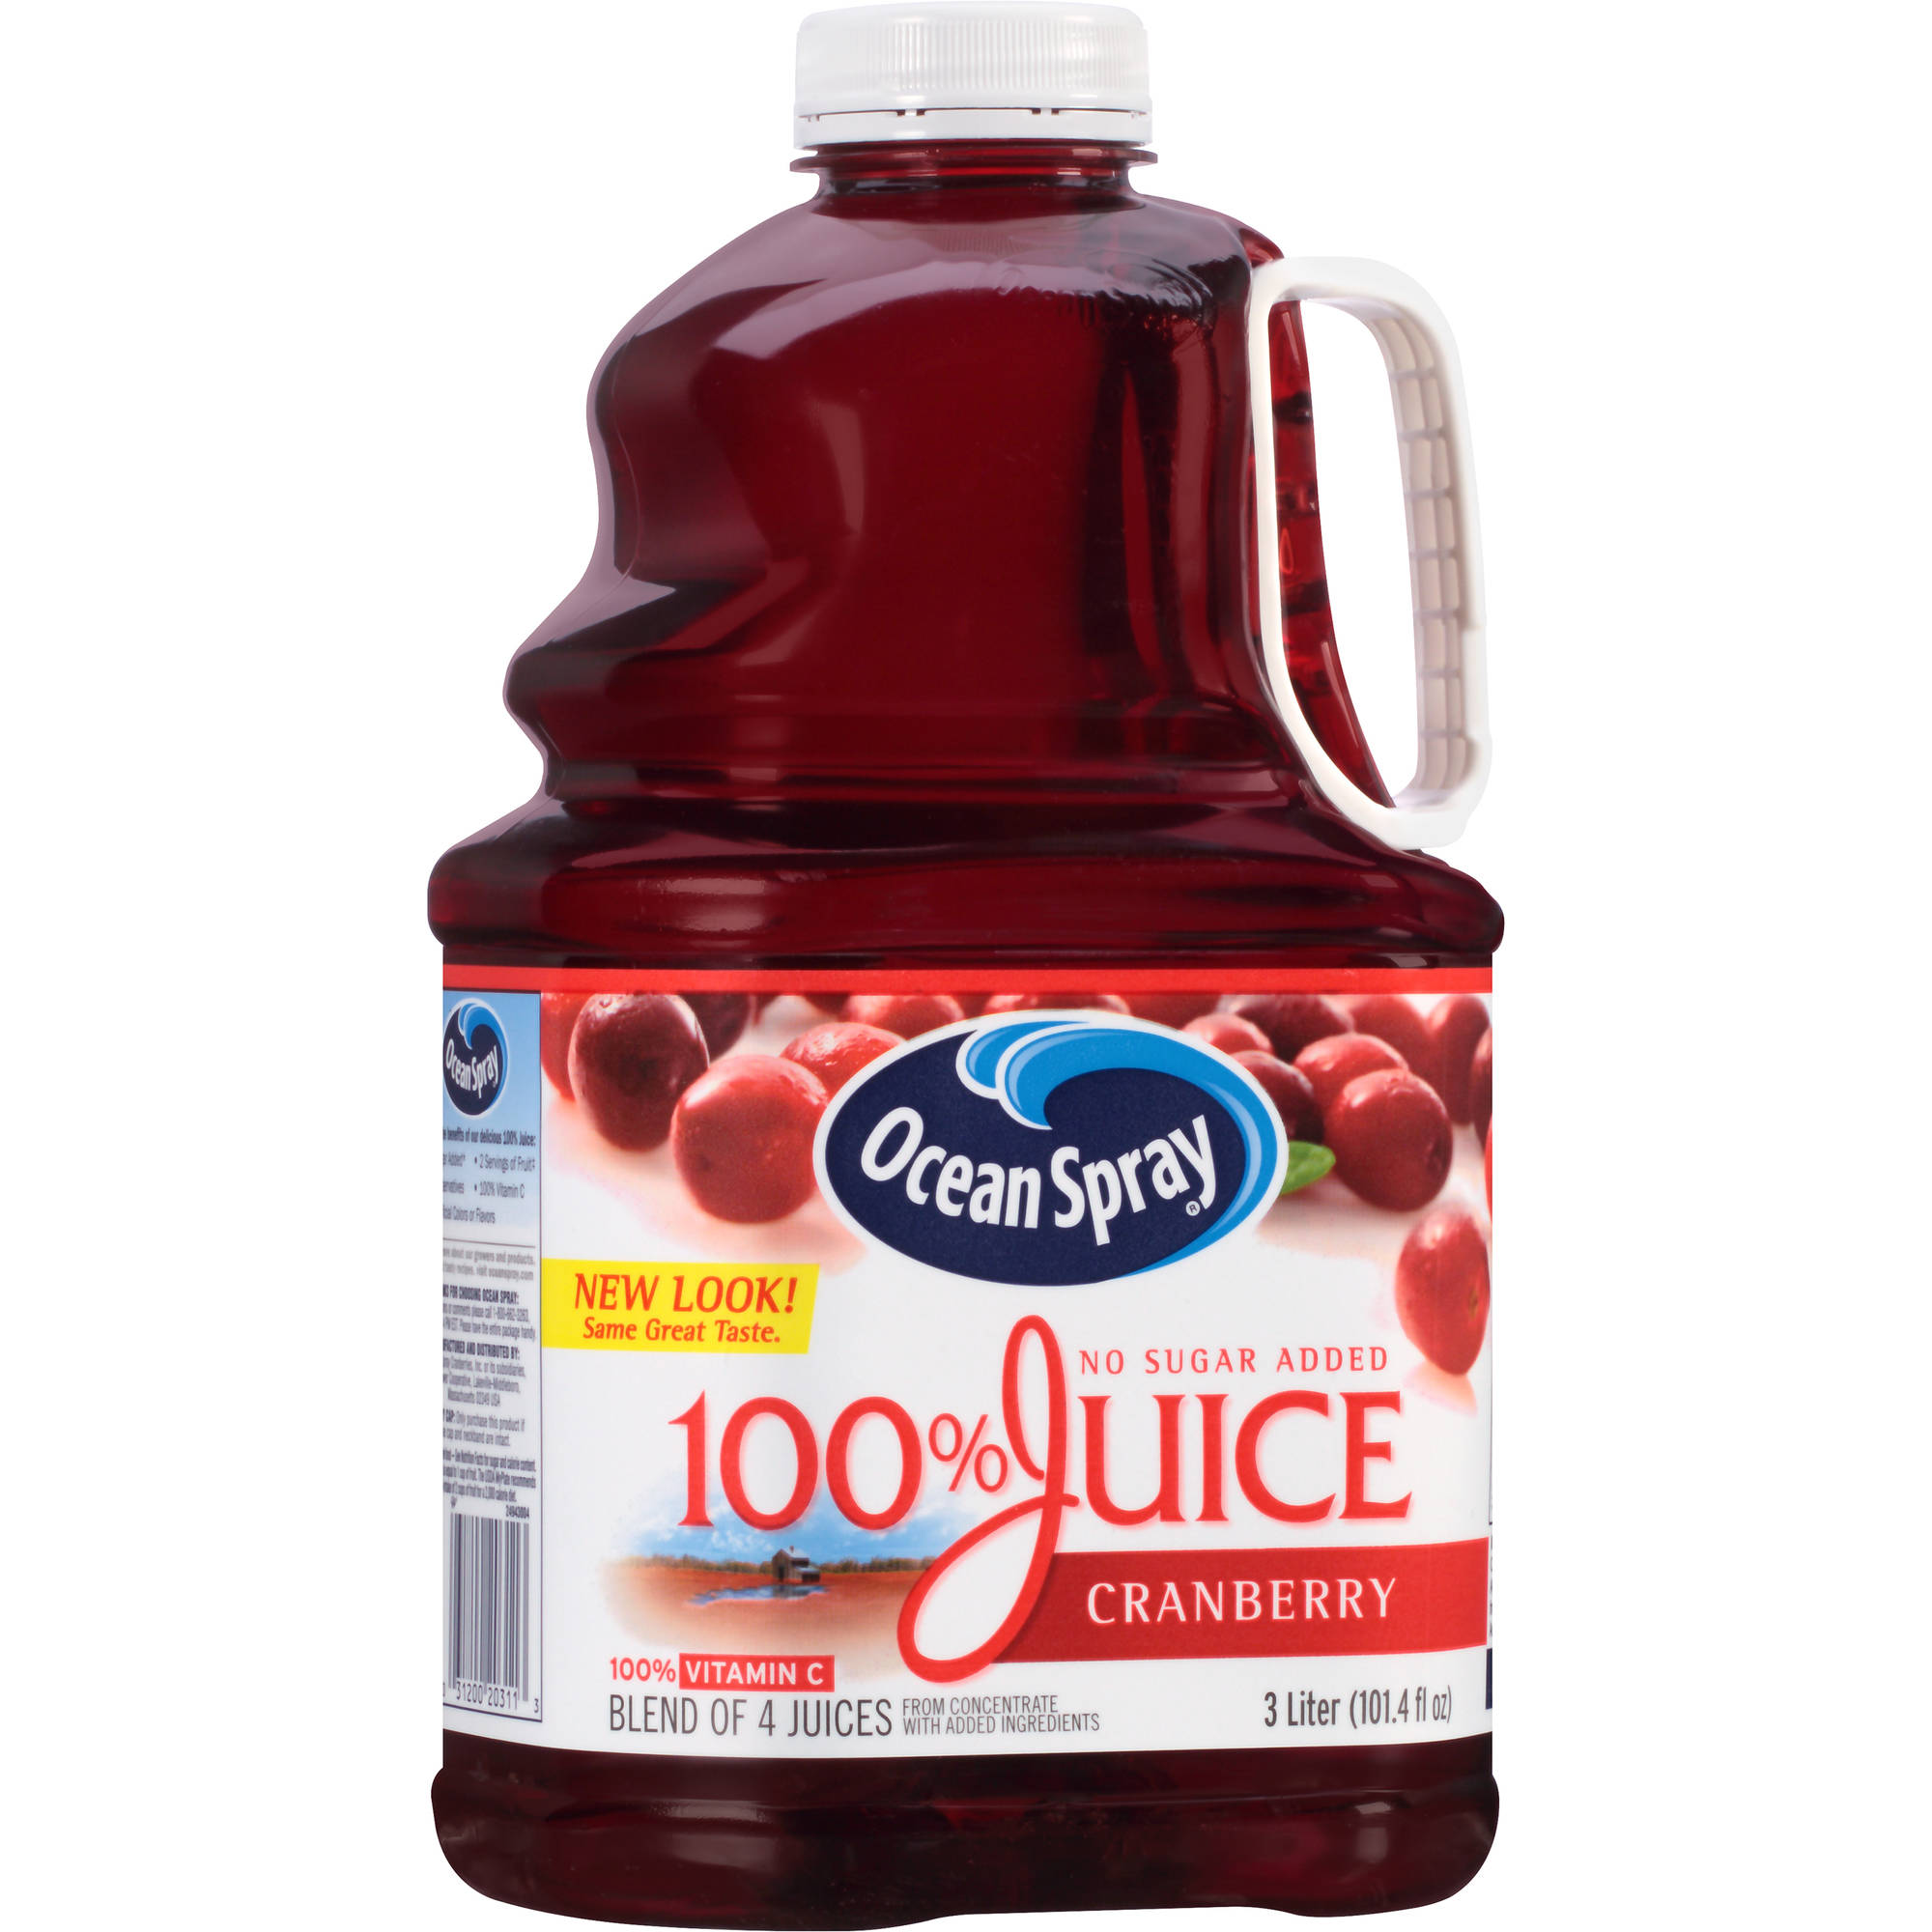 Ocean Spray 100% Cranberry 100% Juice, 101.4 oz